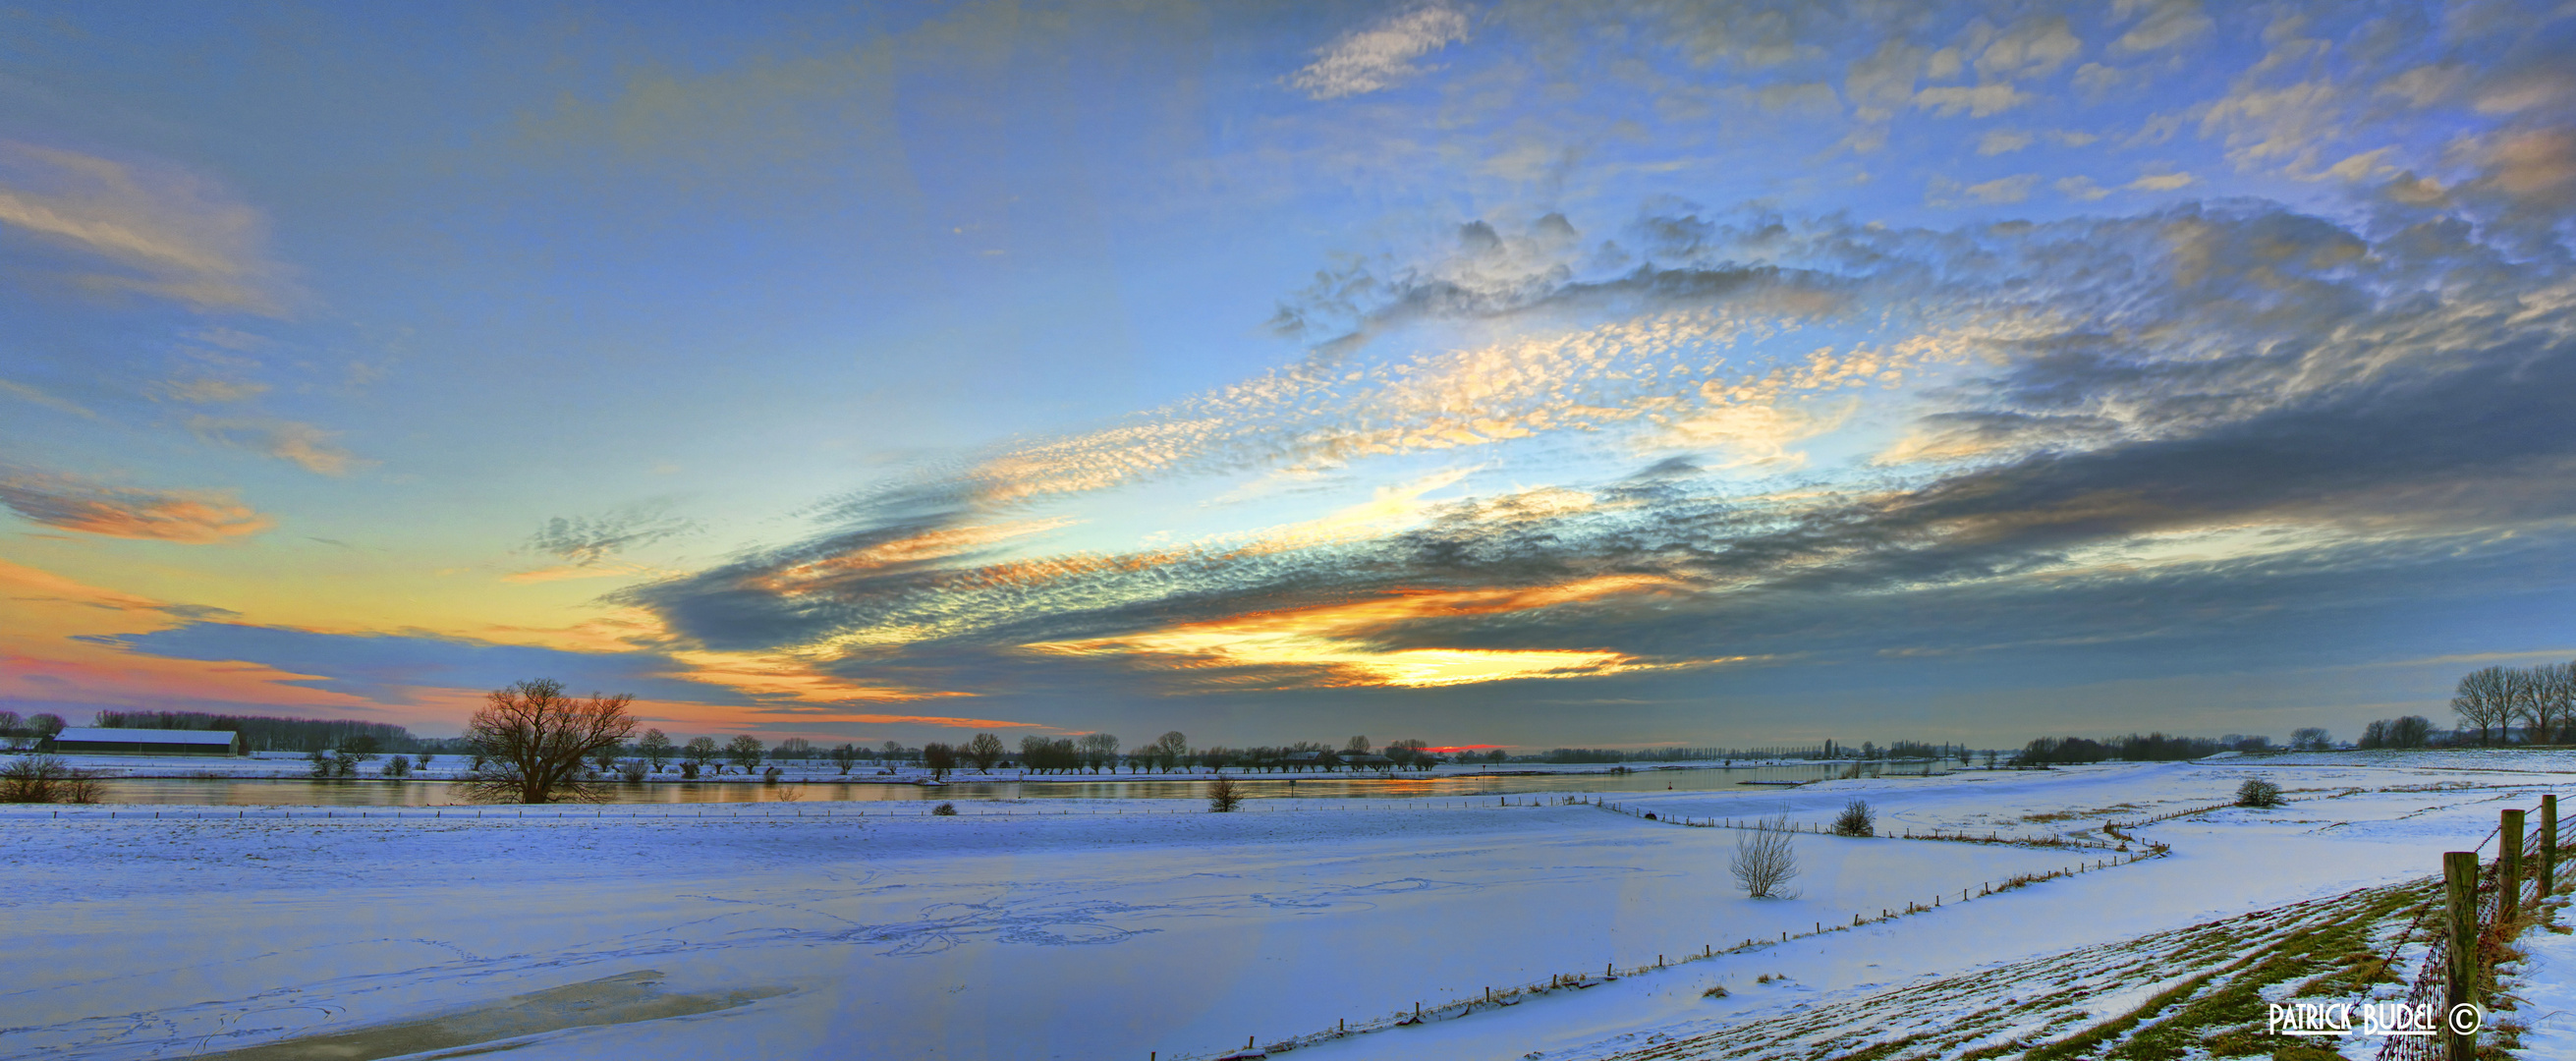 Snowy sunset panorama.